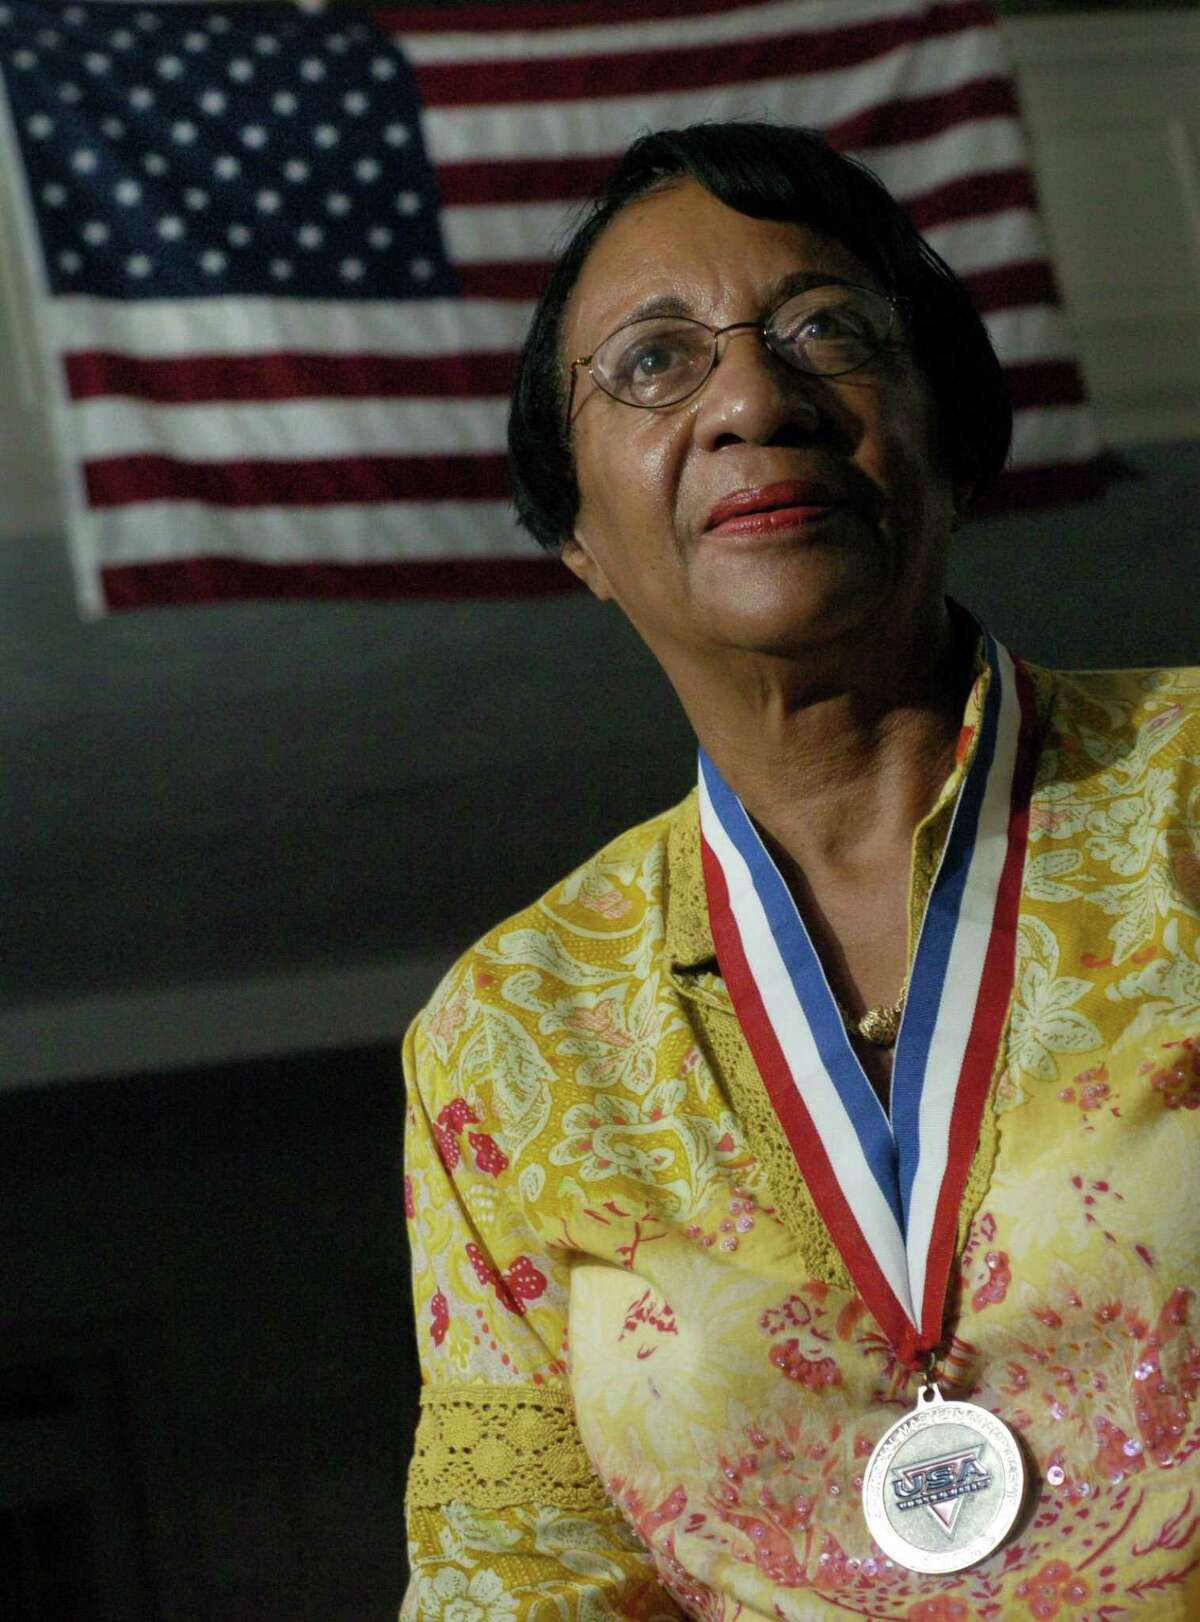 Norwalk_081304_ Mary Roman, Assistant City Clerk for the city of Norwalk, with her second place medal for hammer throw in the 2004 National Masters Championship. Roman, 68, took up track 13 years ago and is now qualified for the 2005 Senior Olympics. Kathleen O'Rourke/staff photo